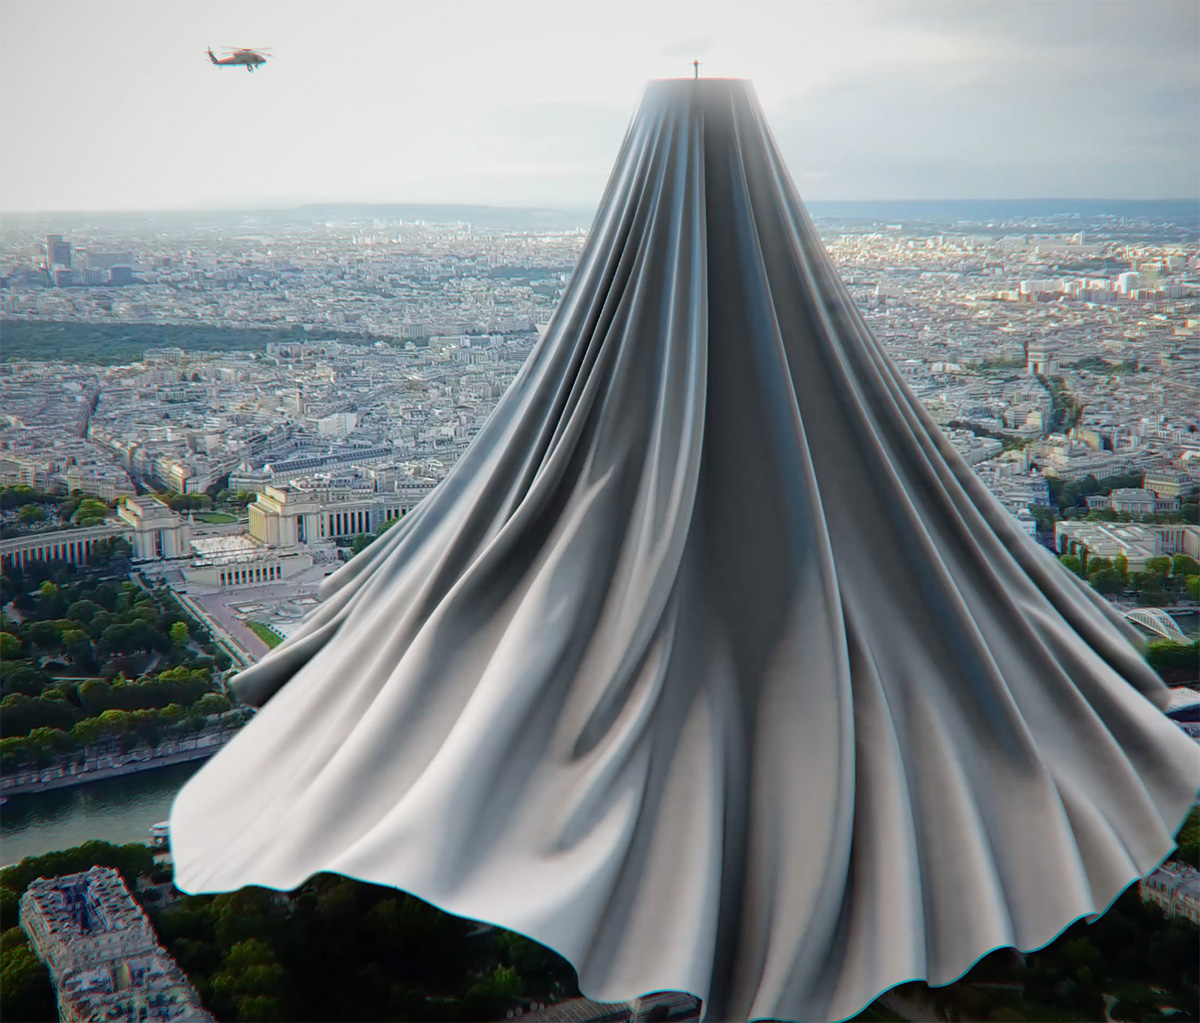 Two helicopters covering the Eiffel Tower with a curtain in the artist's artwork | VFX installation on COVID-19 | Hamid Ebrahimnia | STIRworld